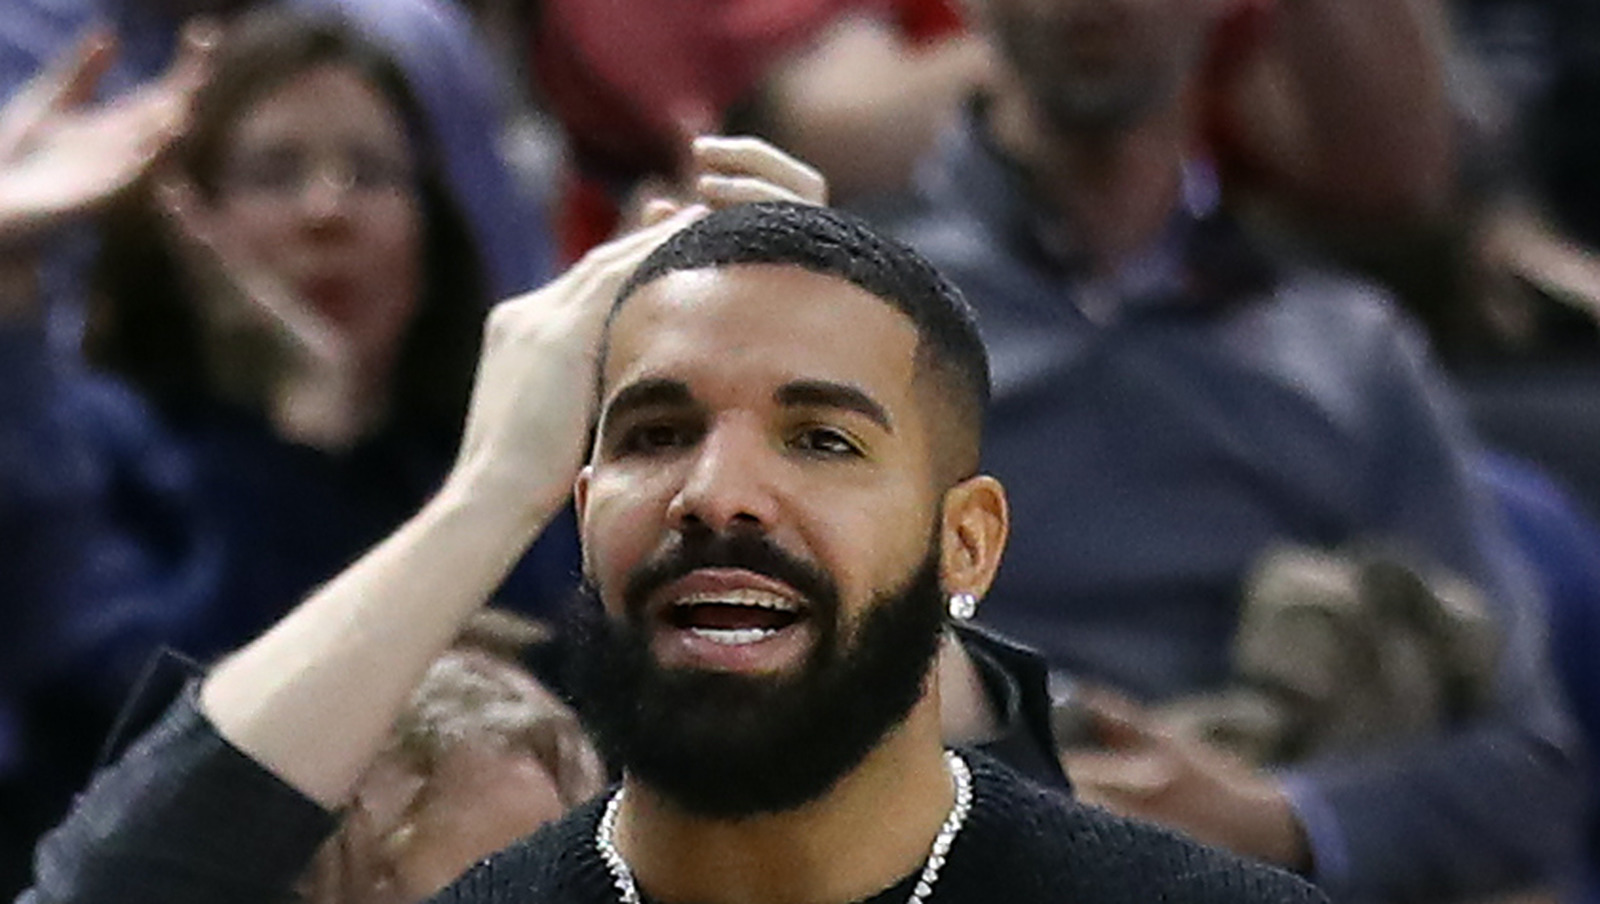 Drake's State Farm Commercial Has Twitter Cracking Up